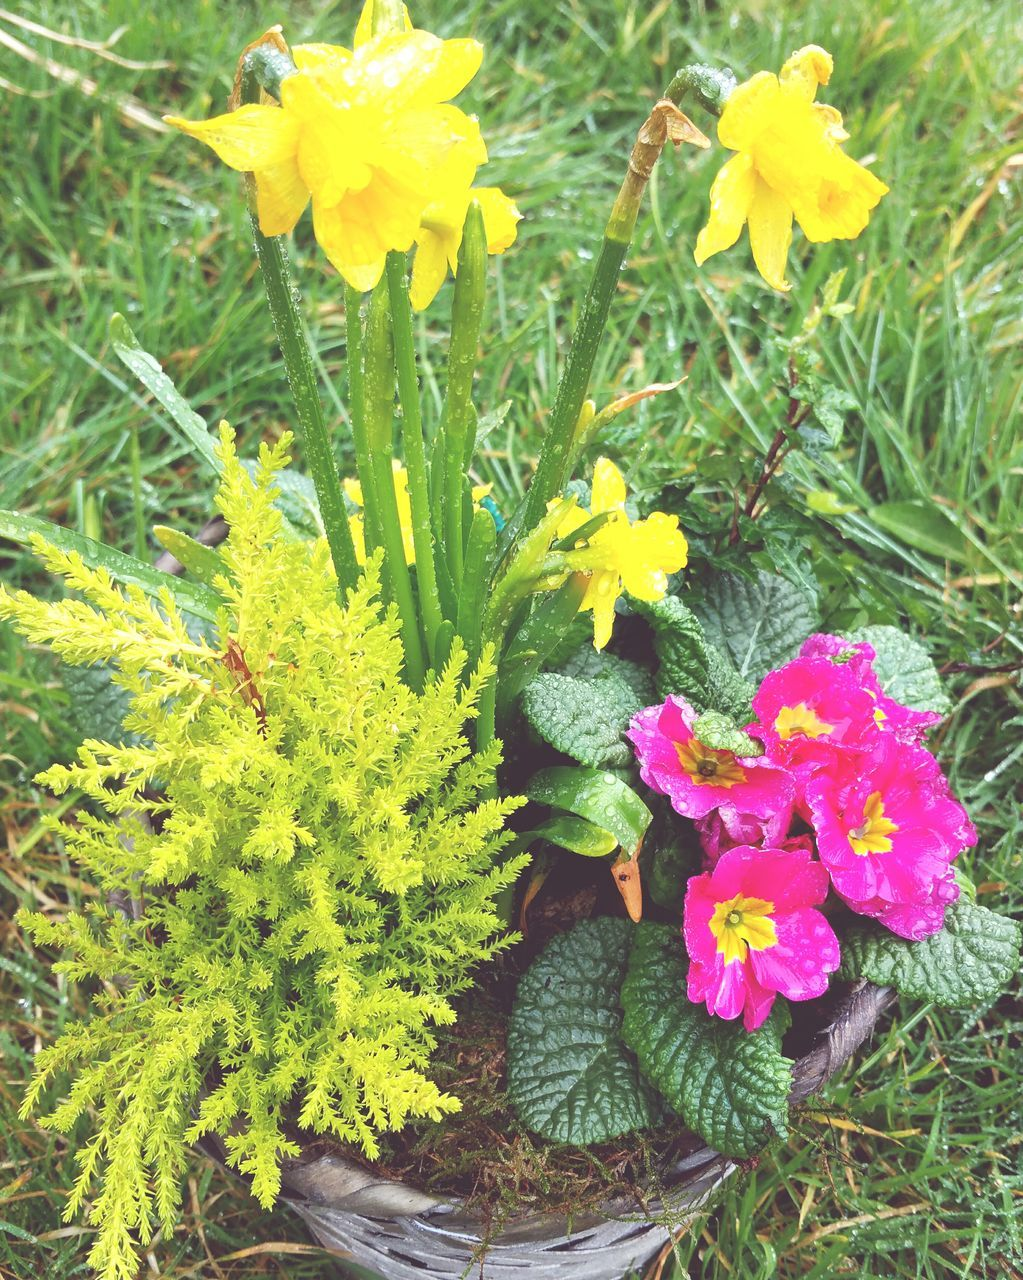 High Angle View Of Pink And Yellow Flowers Blooming On Potted Plant At Park